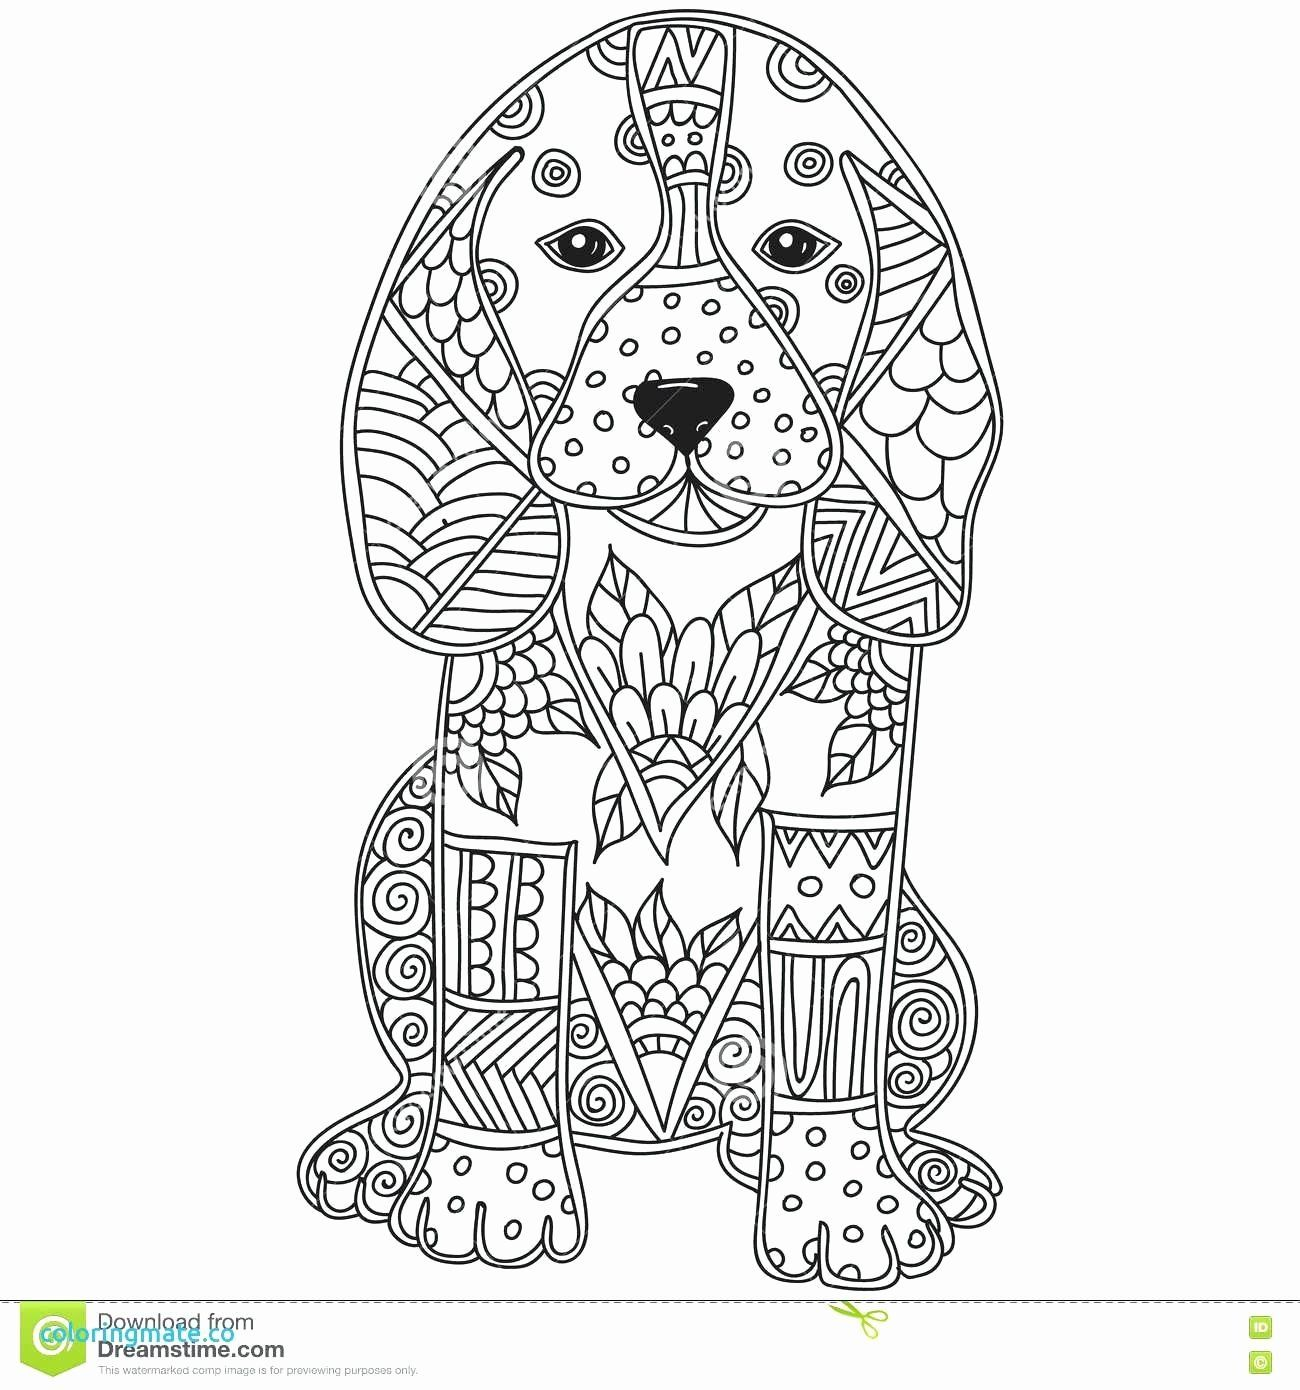 Animal Coloring Sheets Hard New Dog Coloring Pages For Adults Theroarub Dog Coloring Page Animal Coloring Pages Puppy Coloring Pages